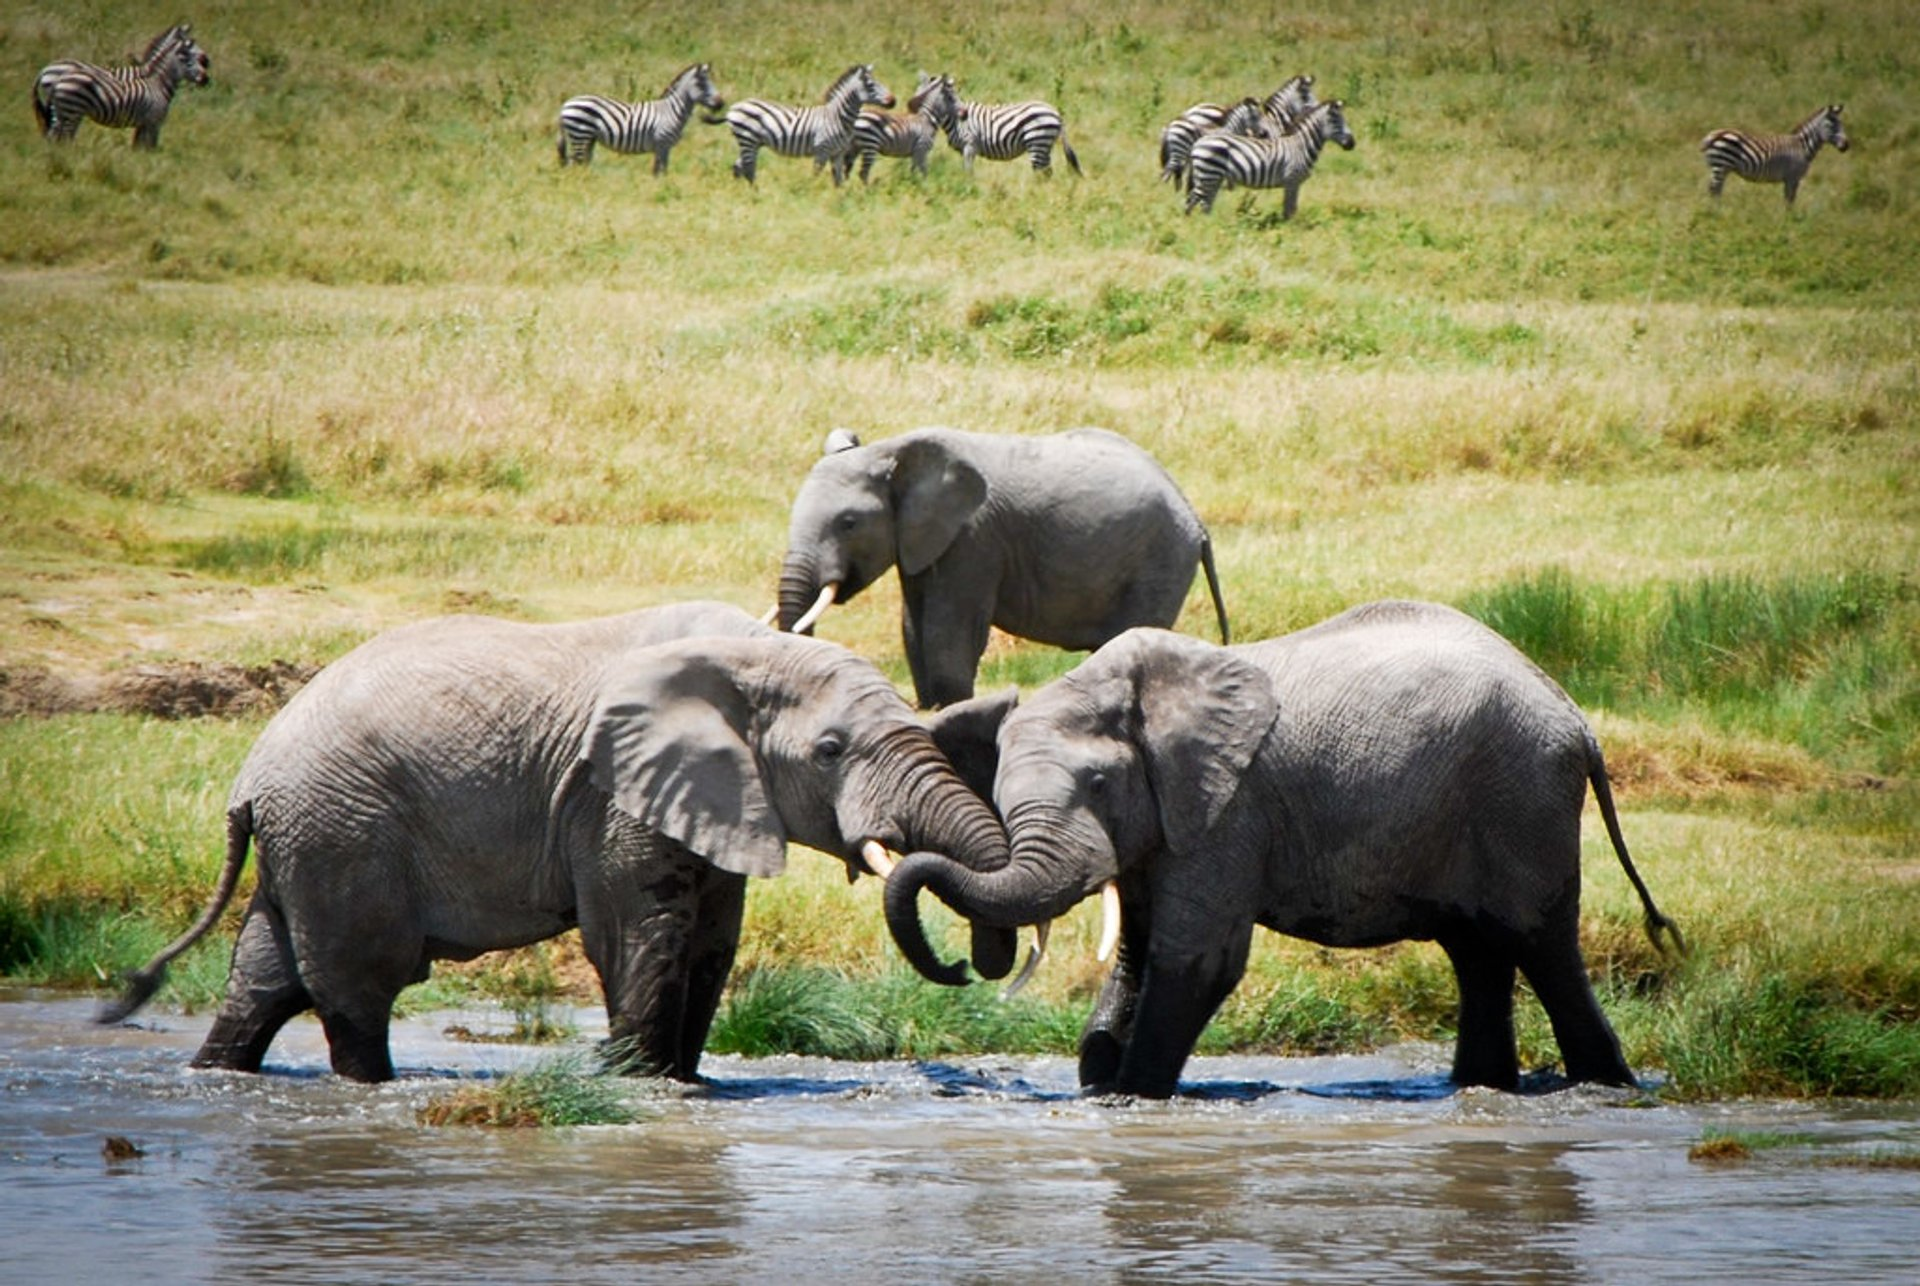 Elephant Herds in Tanzania 2019 - Best Time